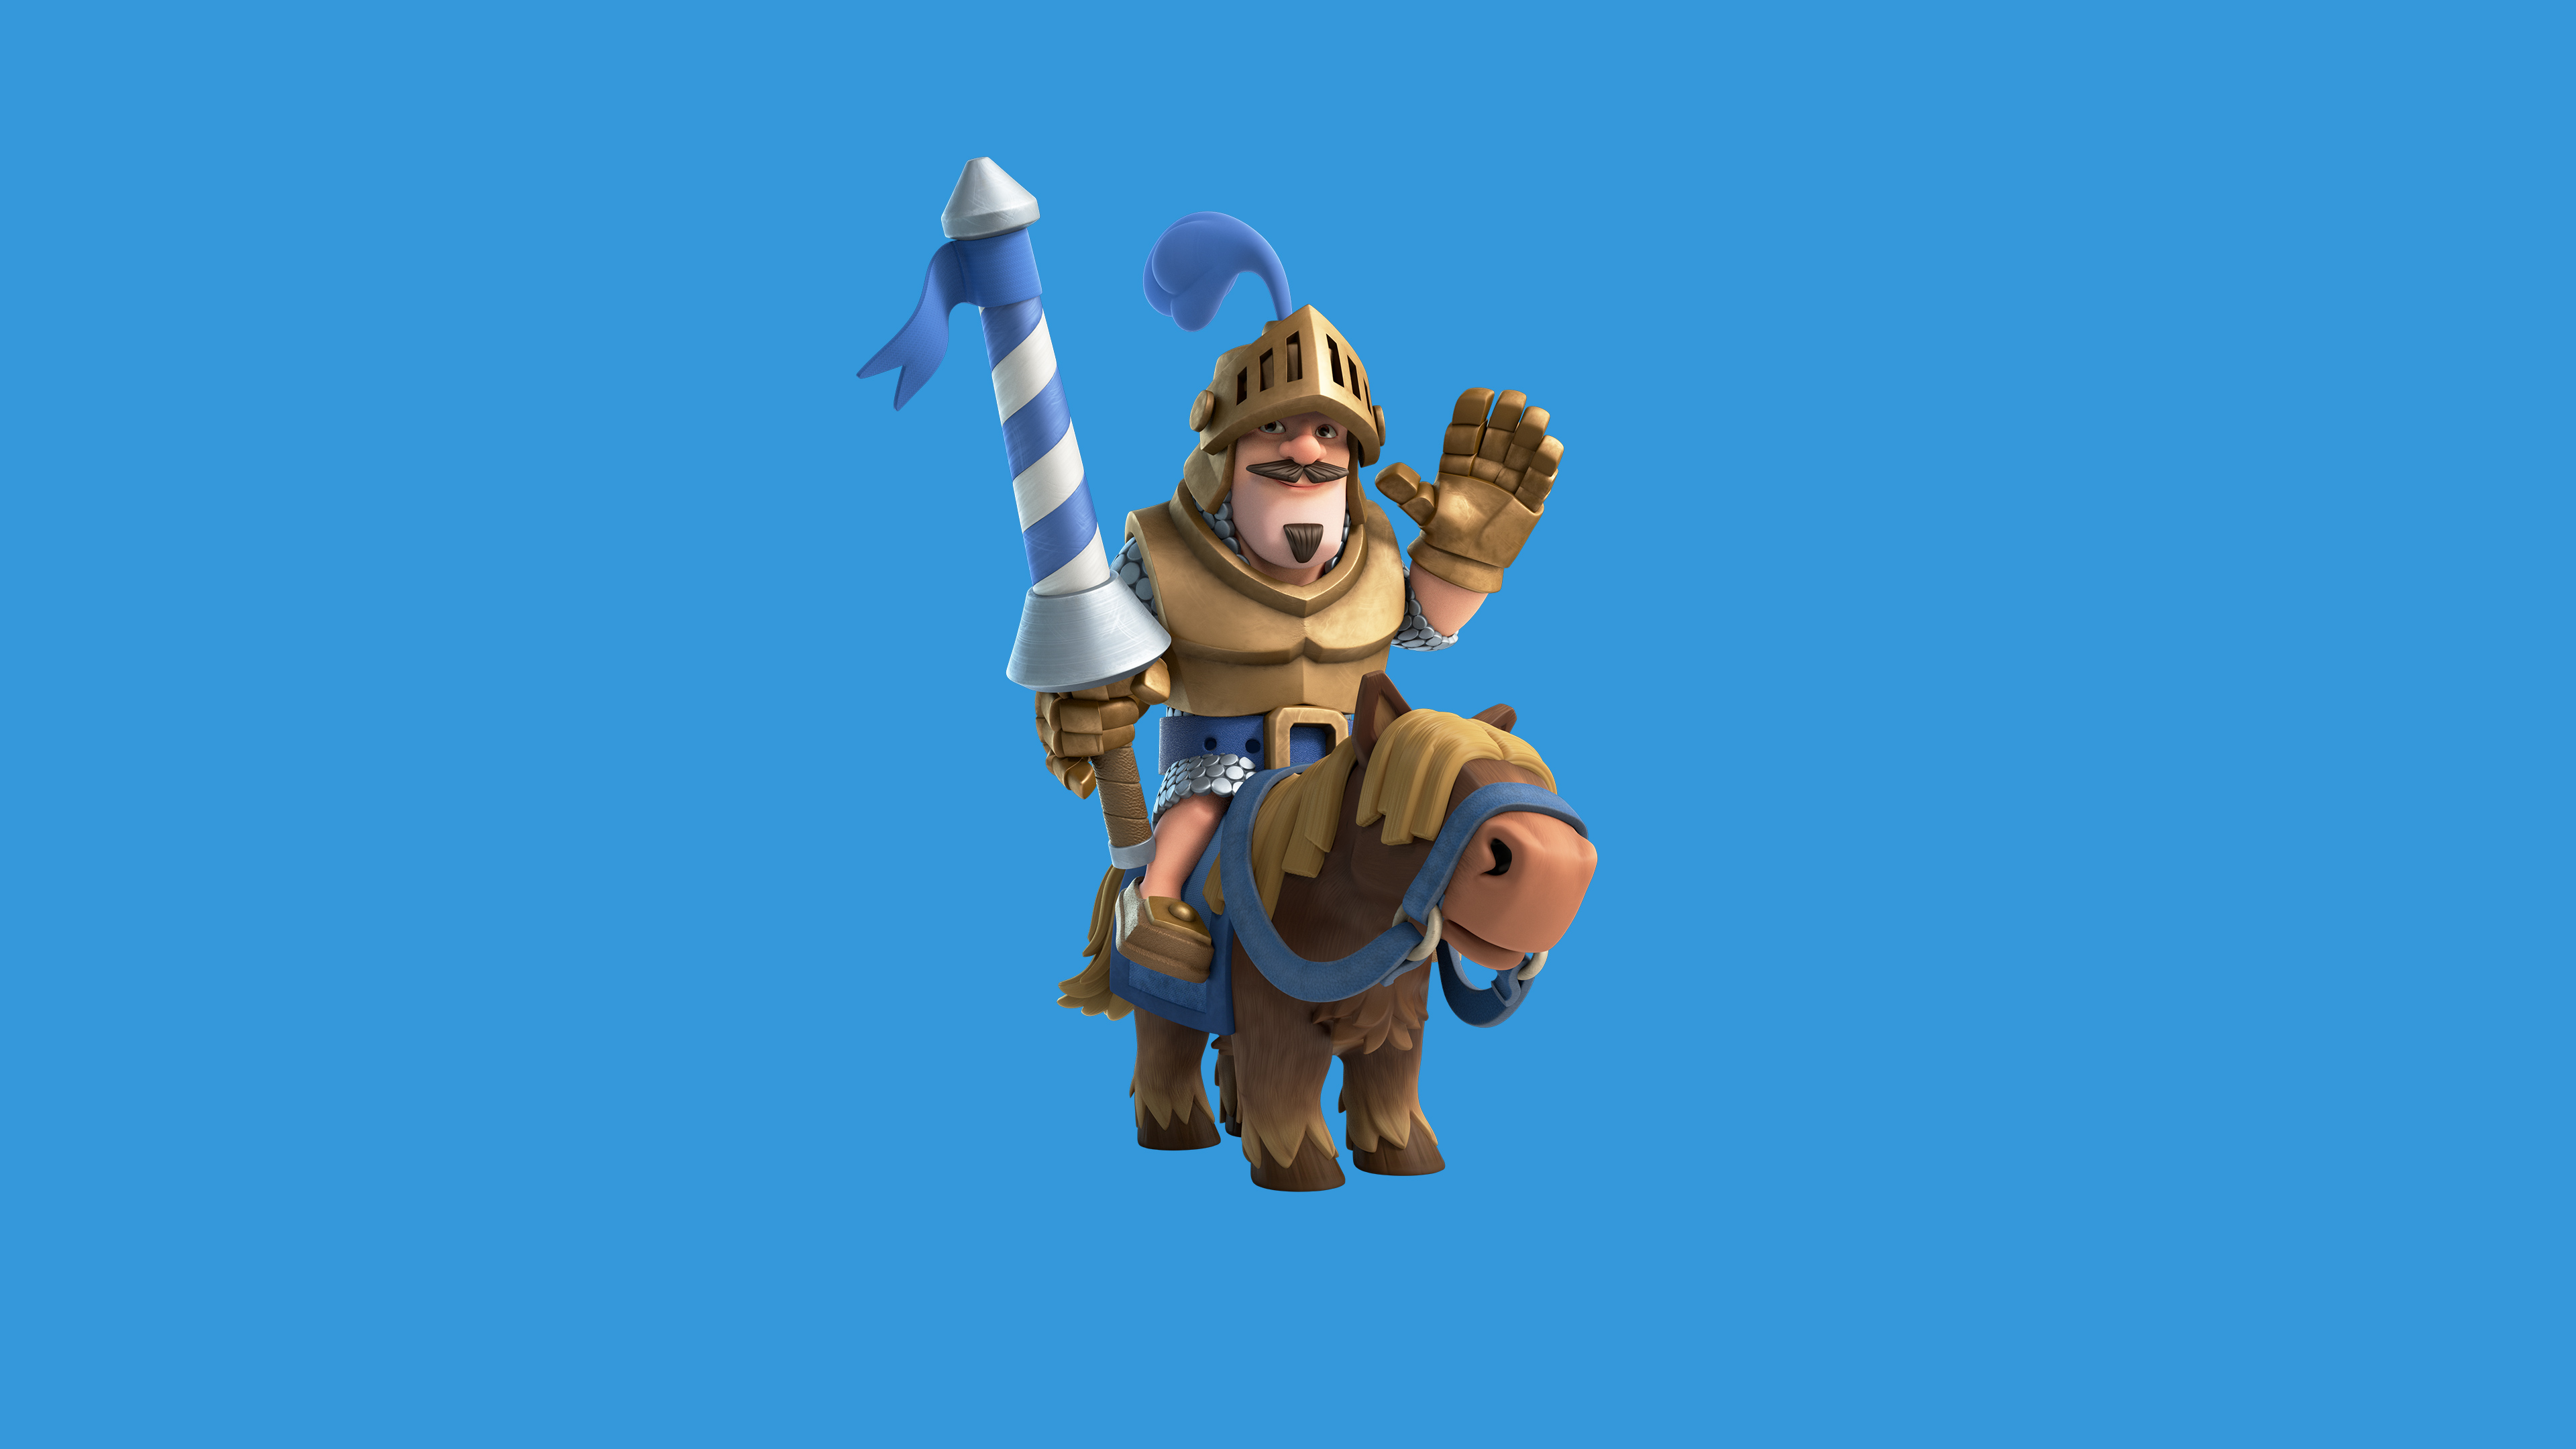 clash royale blue prince 2 1536009001 - Clash Royale Blue Prince 2 - supercell wallpapers, games wallpapers, clash royale wallpapers, 2016 games wallpapers